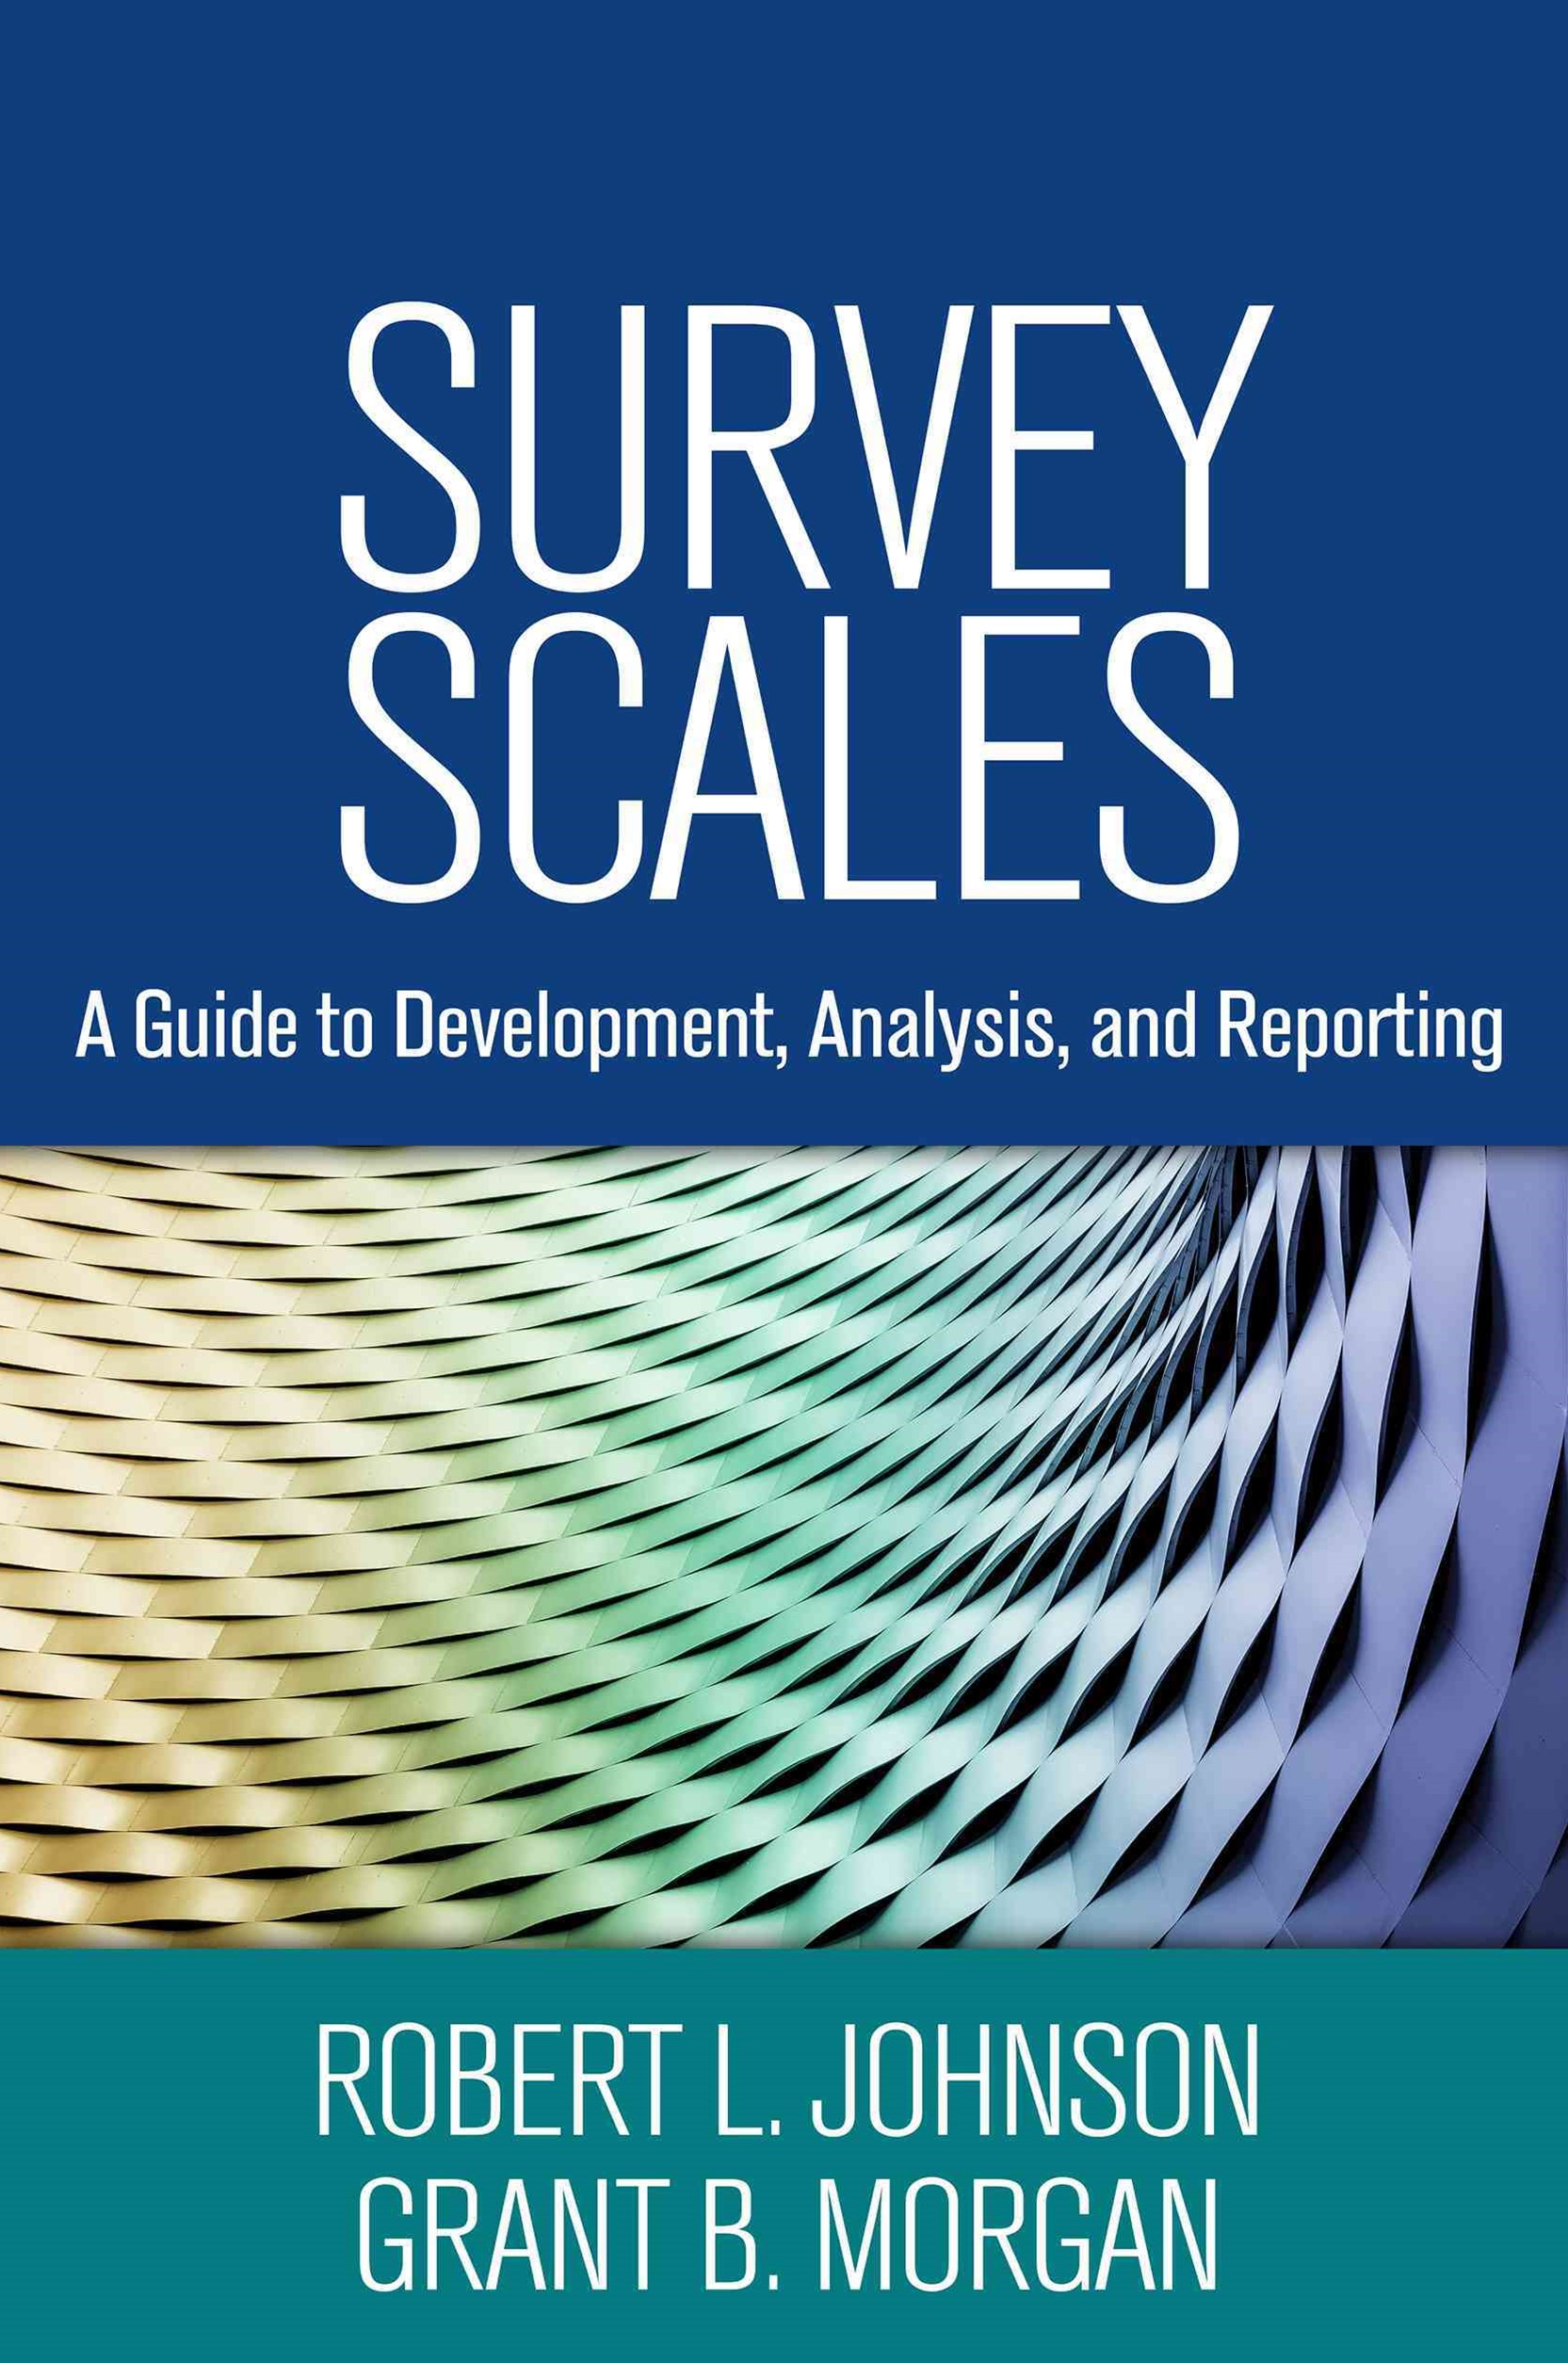 Survey Scales